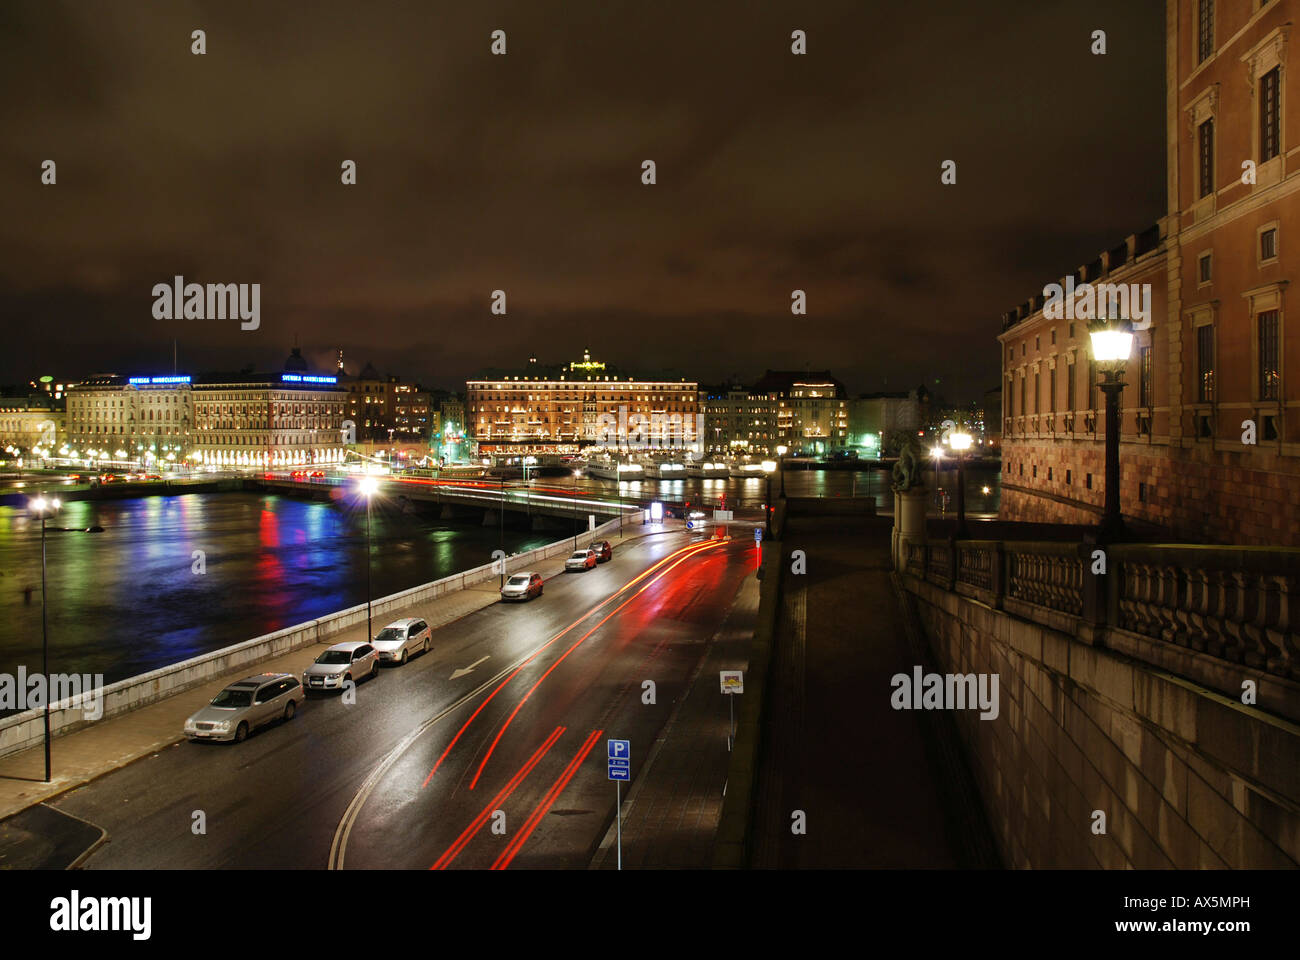 Nighttime view of Blasieholmen and the Grand Hotel in Stockholm, Sweden, Scandinavia, Europe - Stock Image